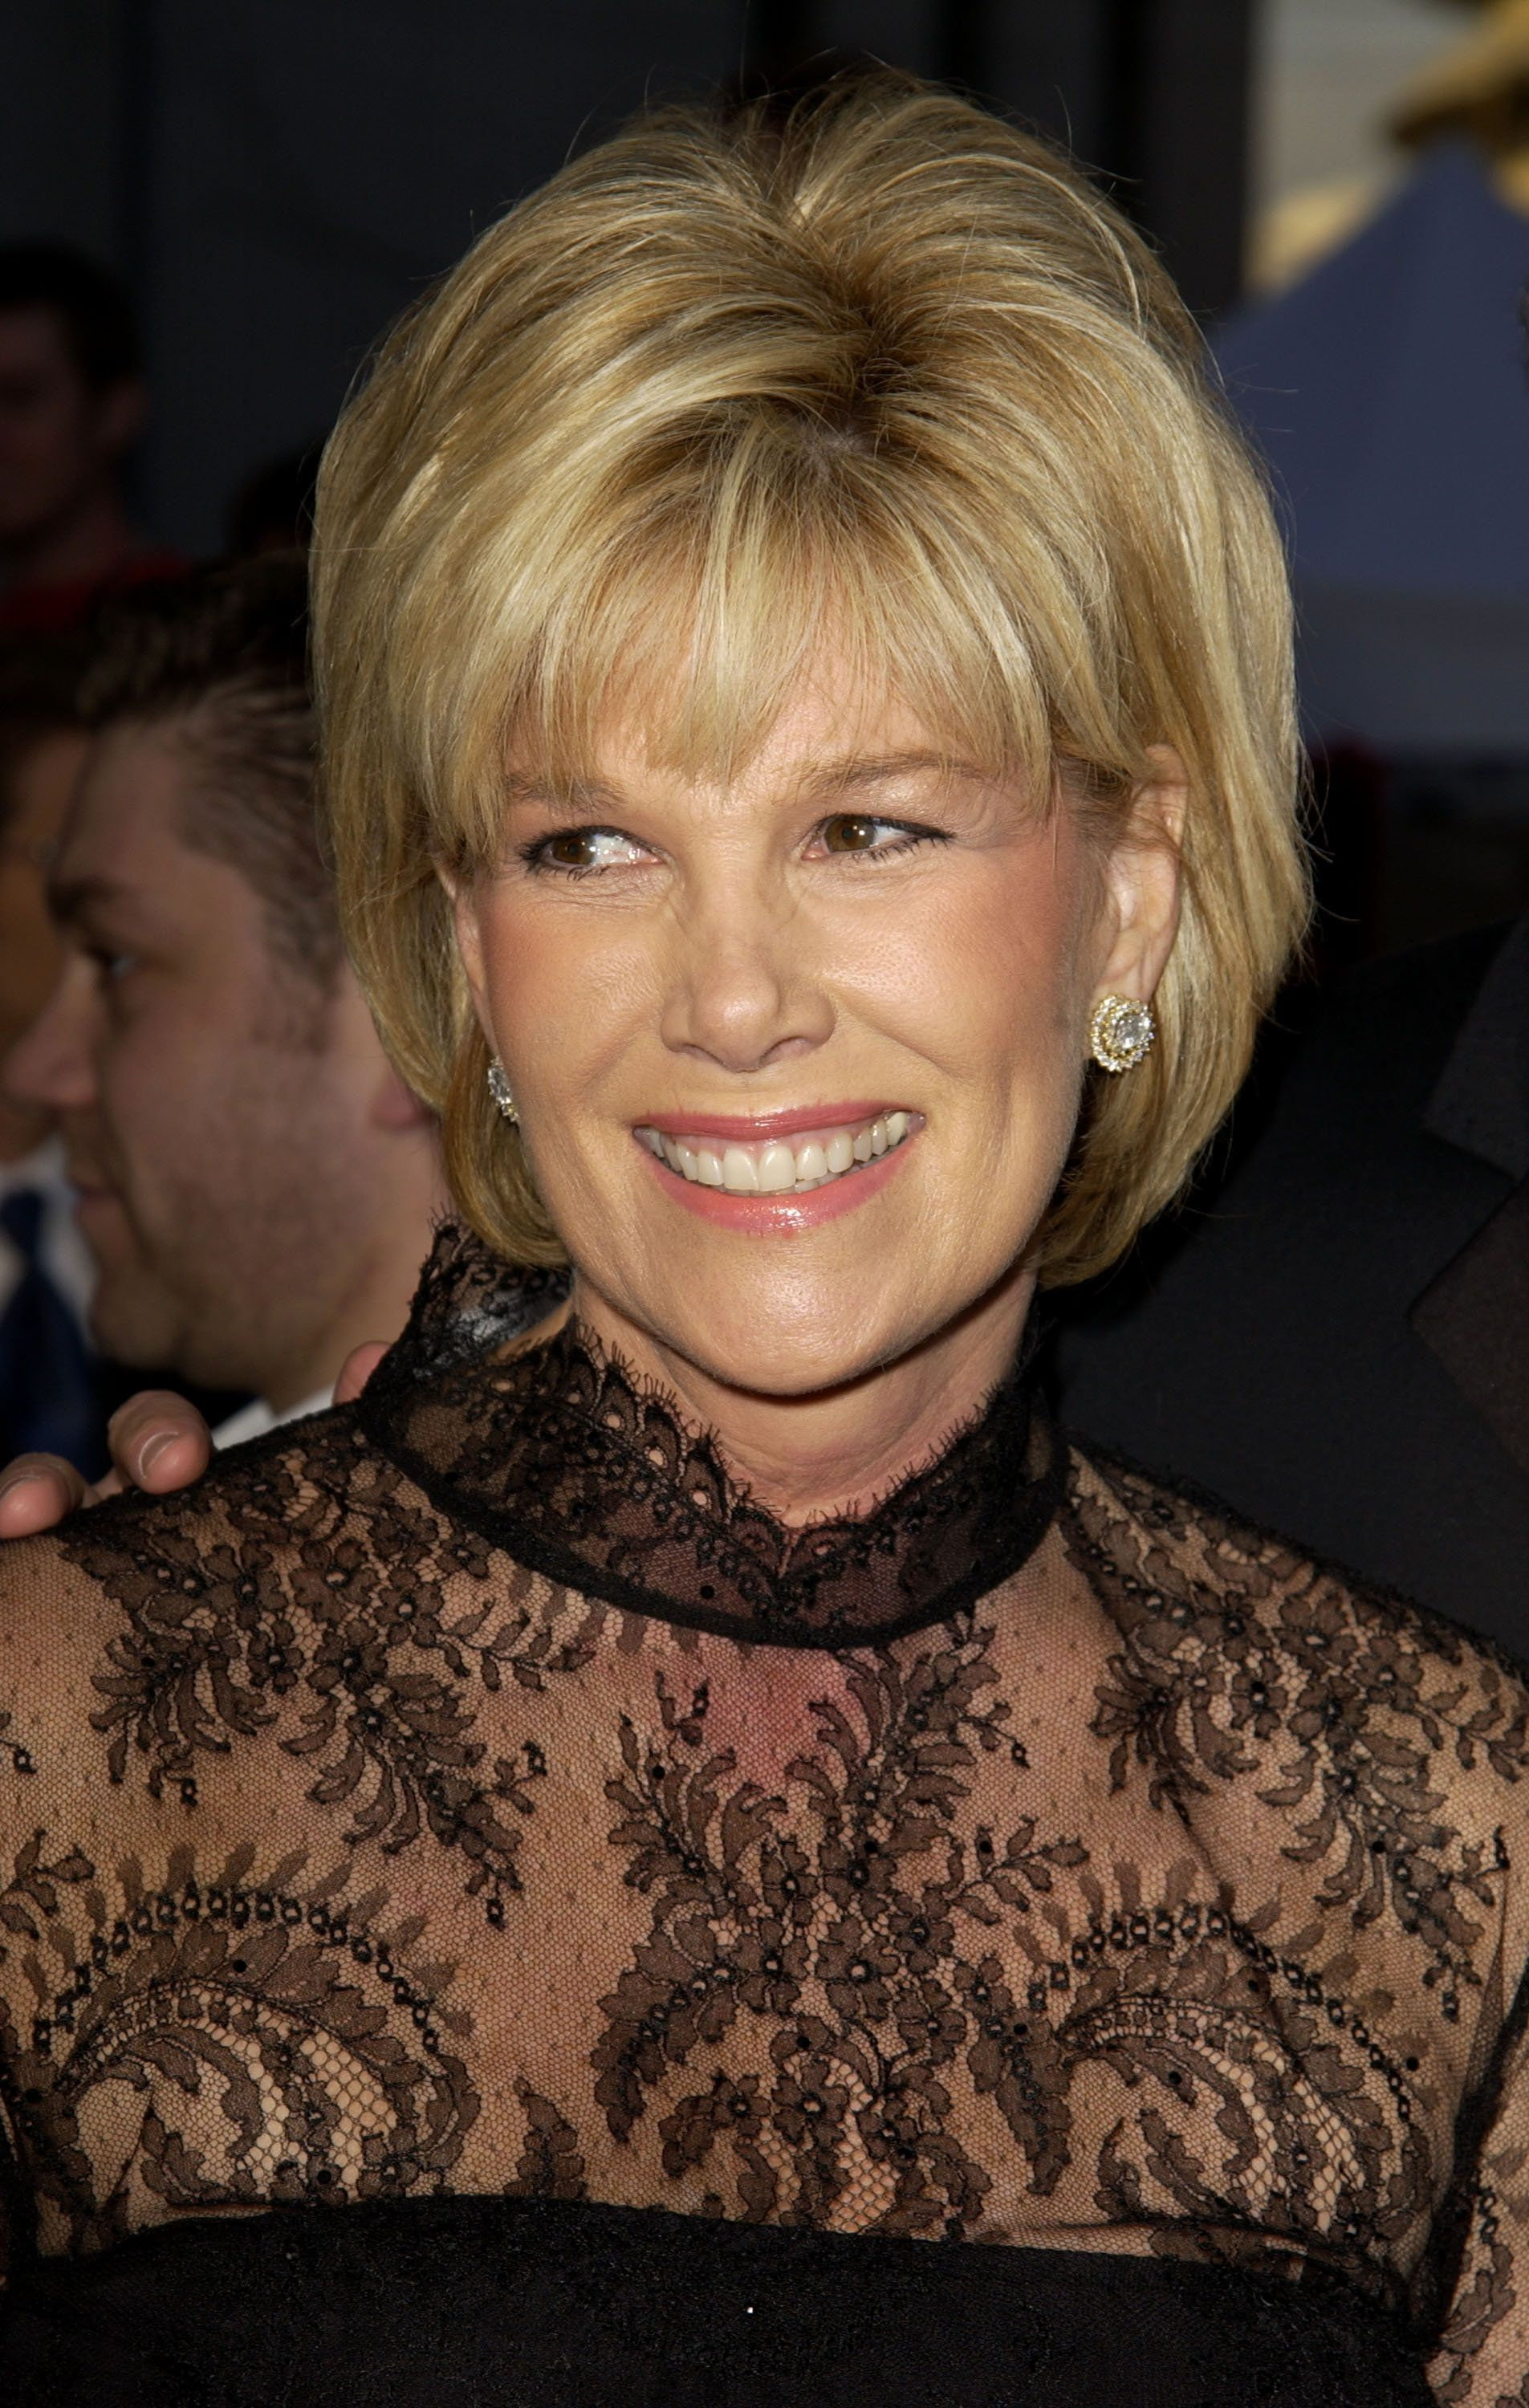 Joan Lunden during ABC's 50th Anniversary Celebration at The Pantages Theater in Hollywood, California, United States. (Photo by SGranitz/WireImage)